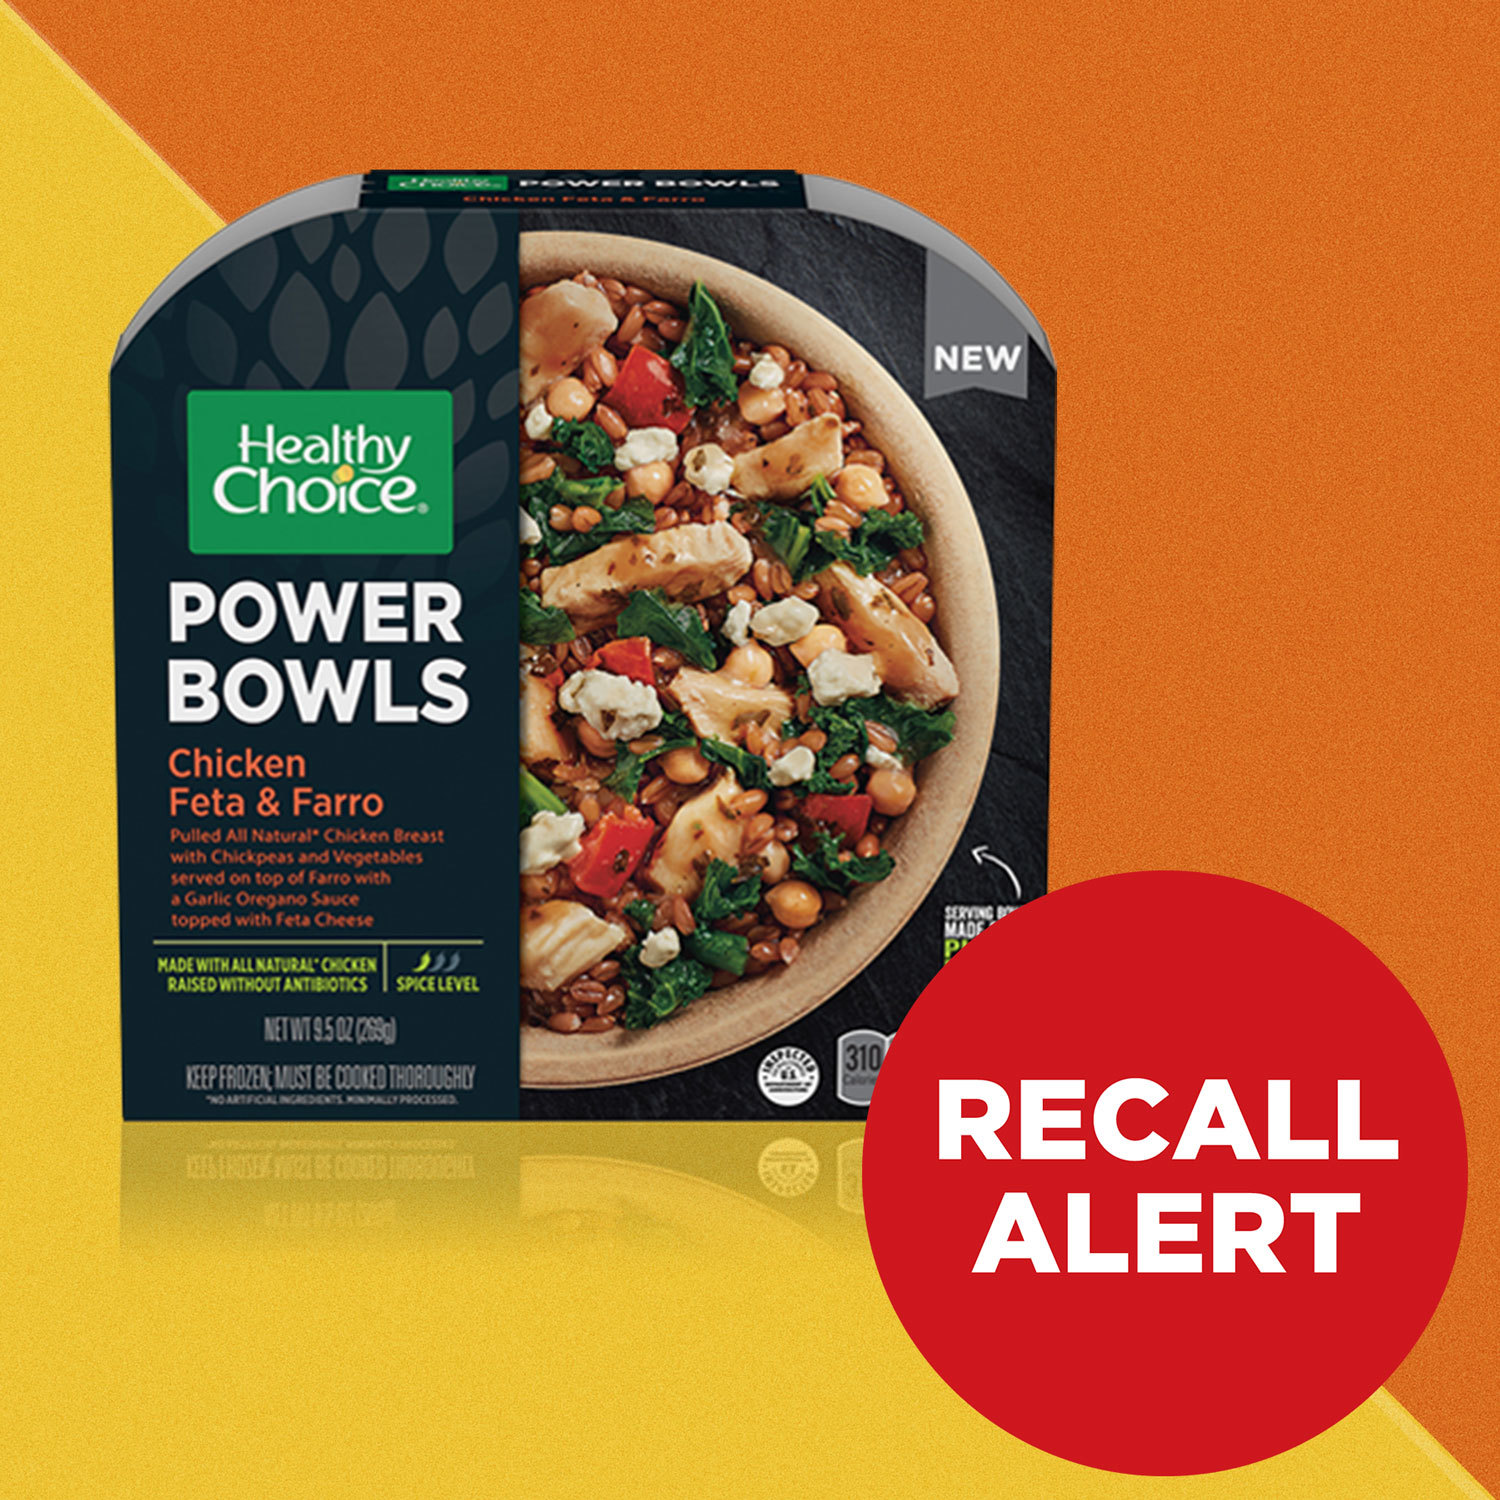 Photo of a Healthy Choice Power Bowl frozen meal